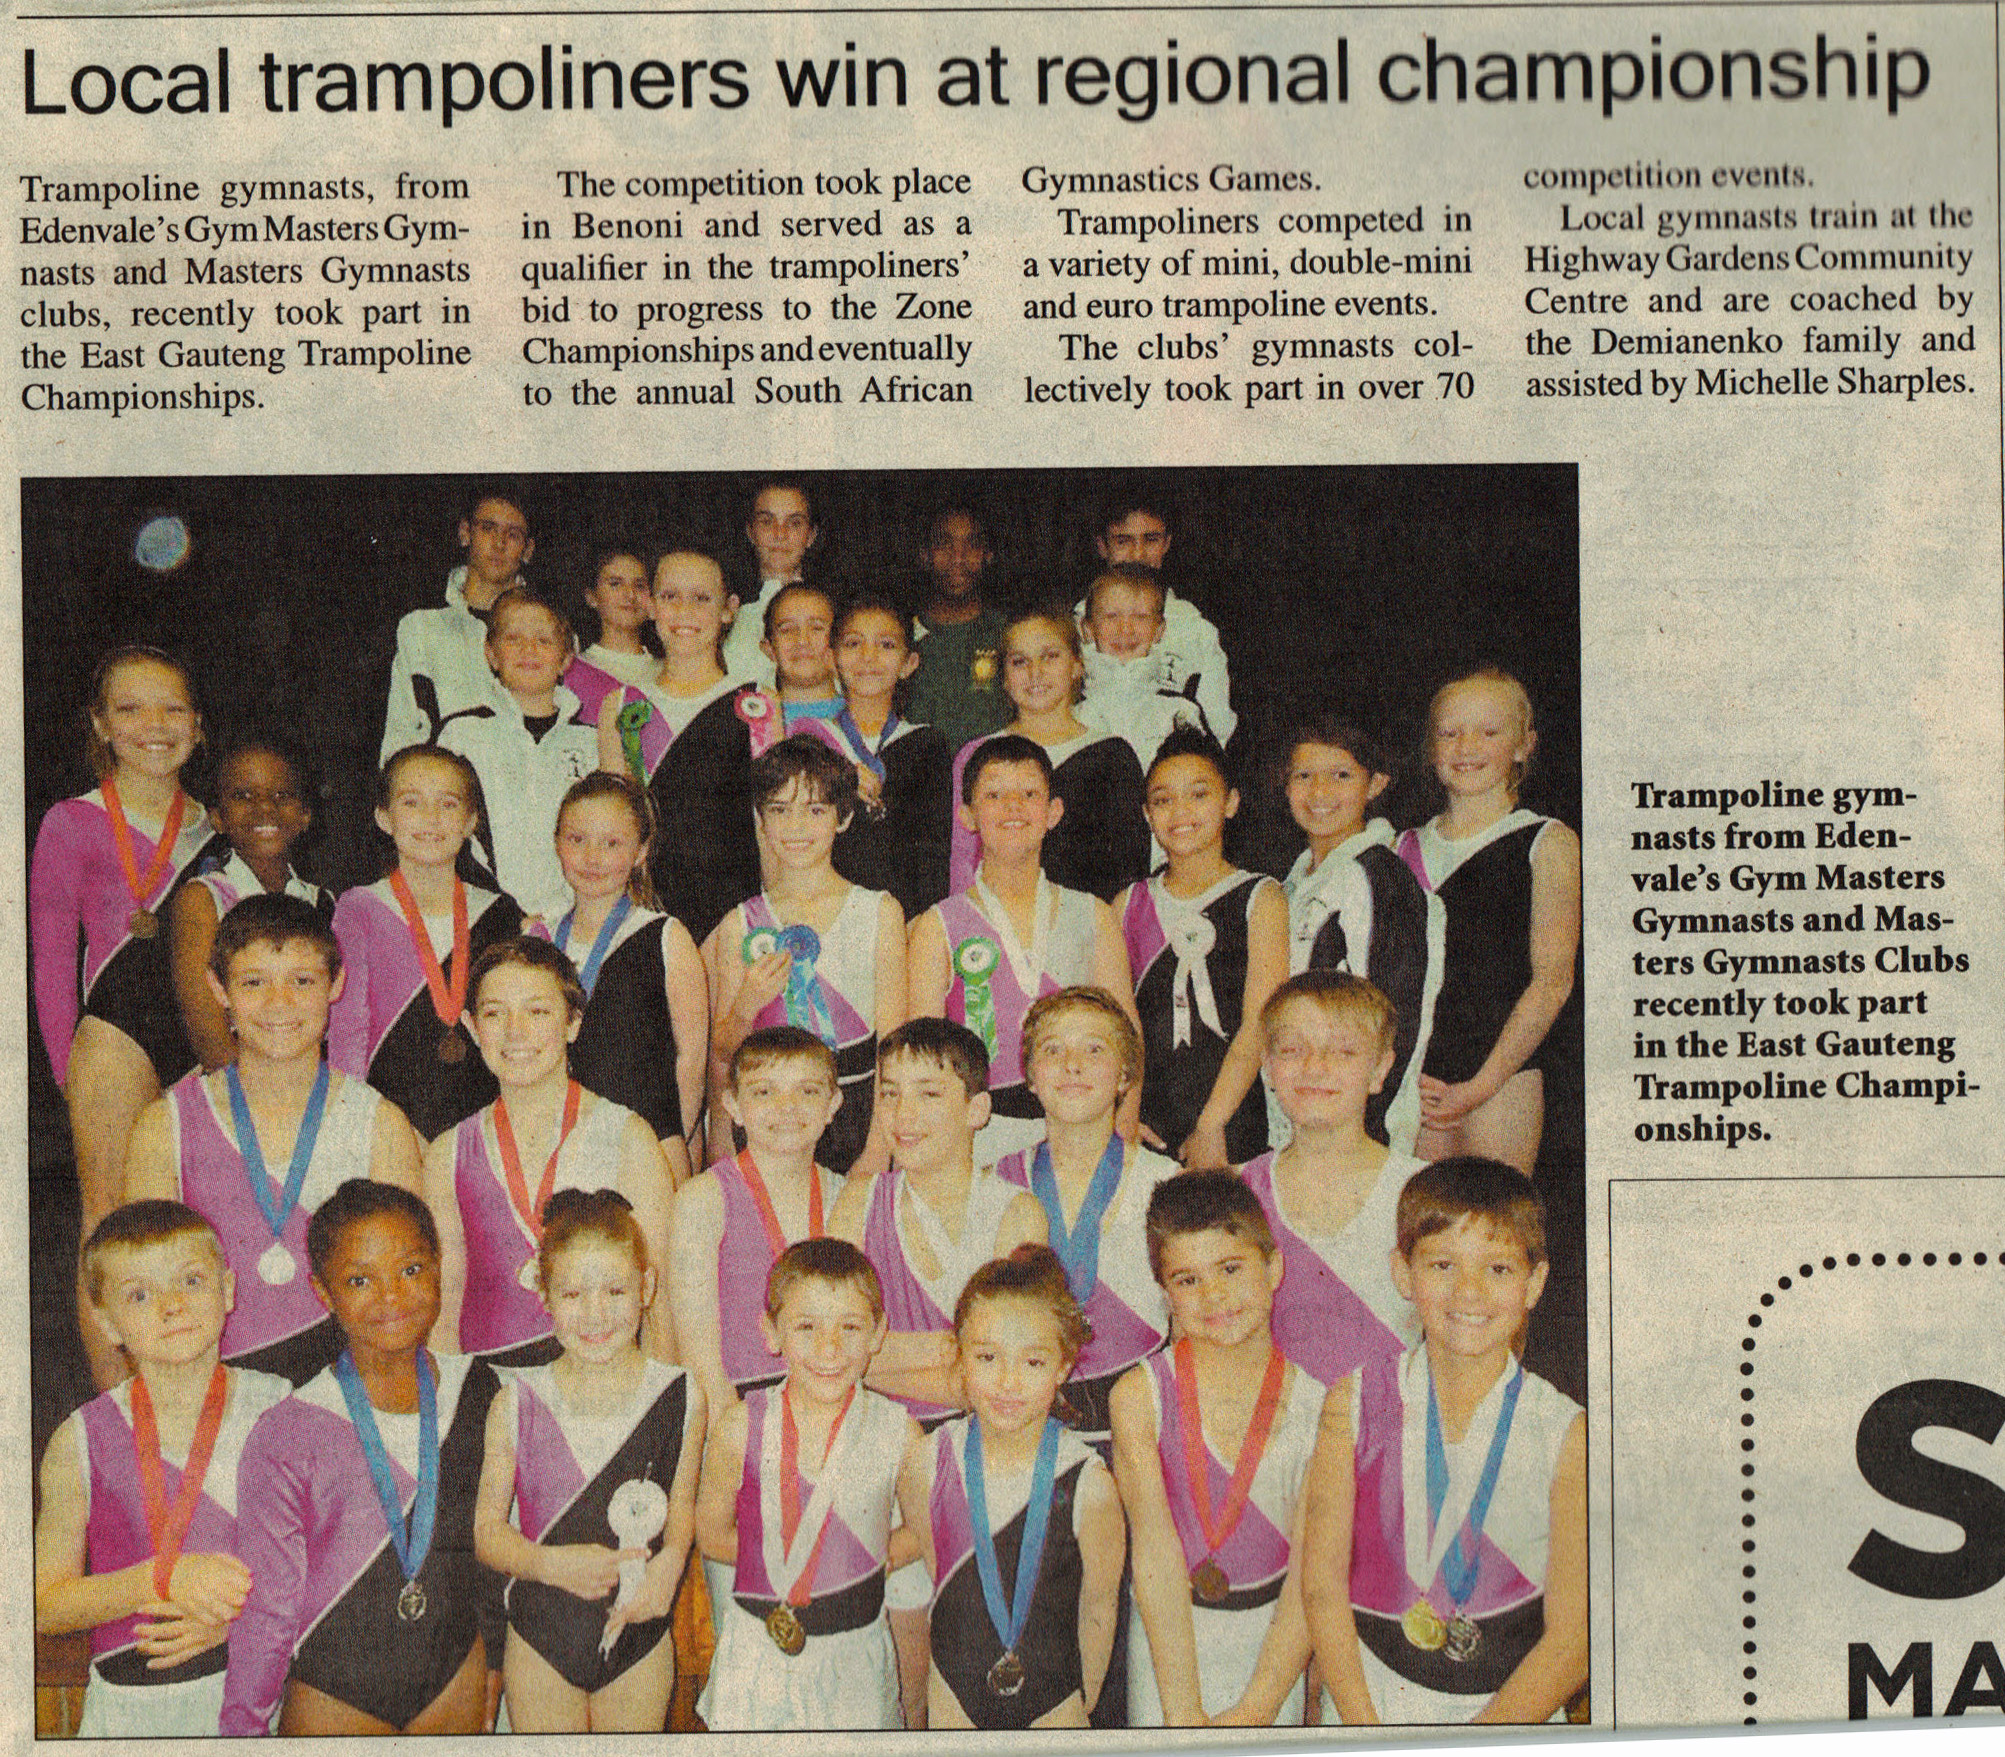 Local Trampoliners win at Regional Championship